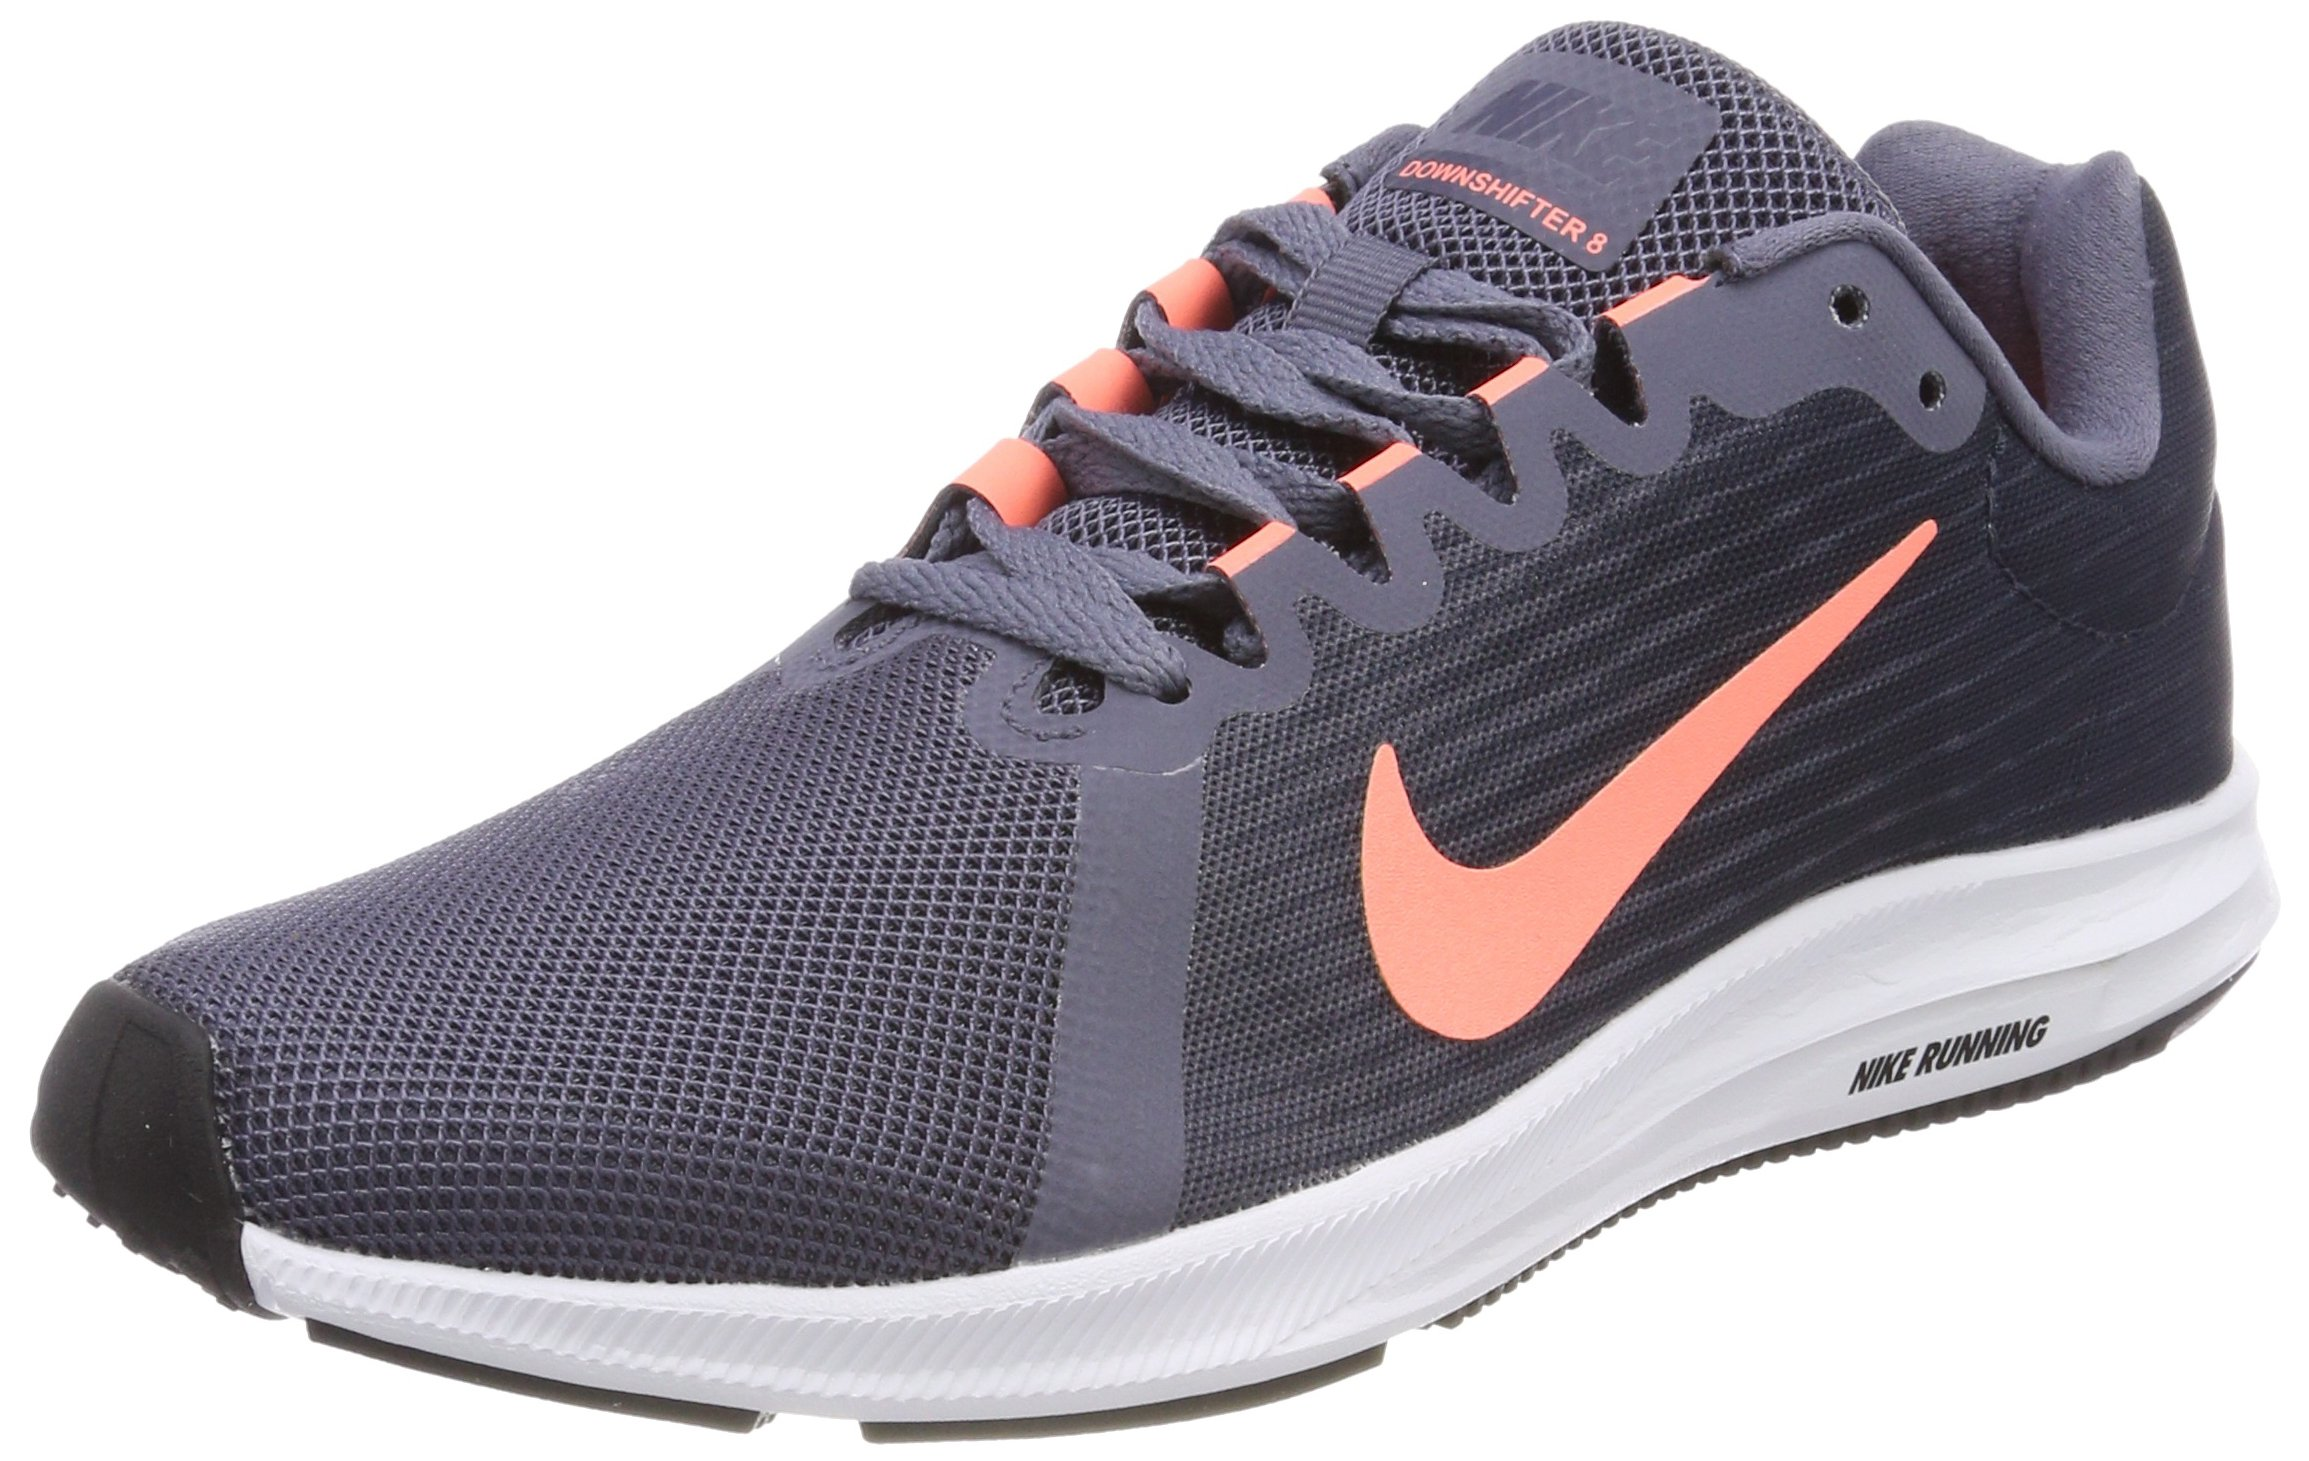 sports shoes 9f2ae b3d72 Galleon - Nike Women's Downshifter 8 Running Shoe Light Carbon/Crimson  Pulse/Thunder Blue Size 8 M US